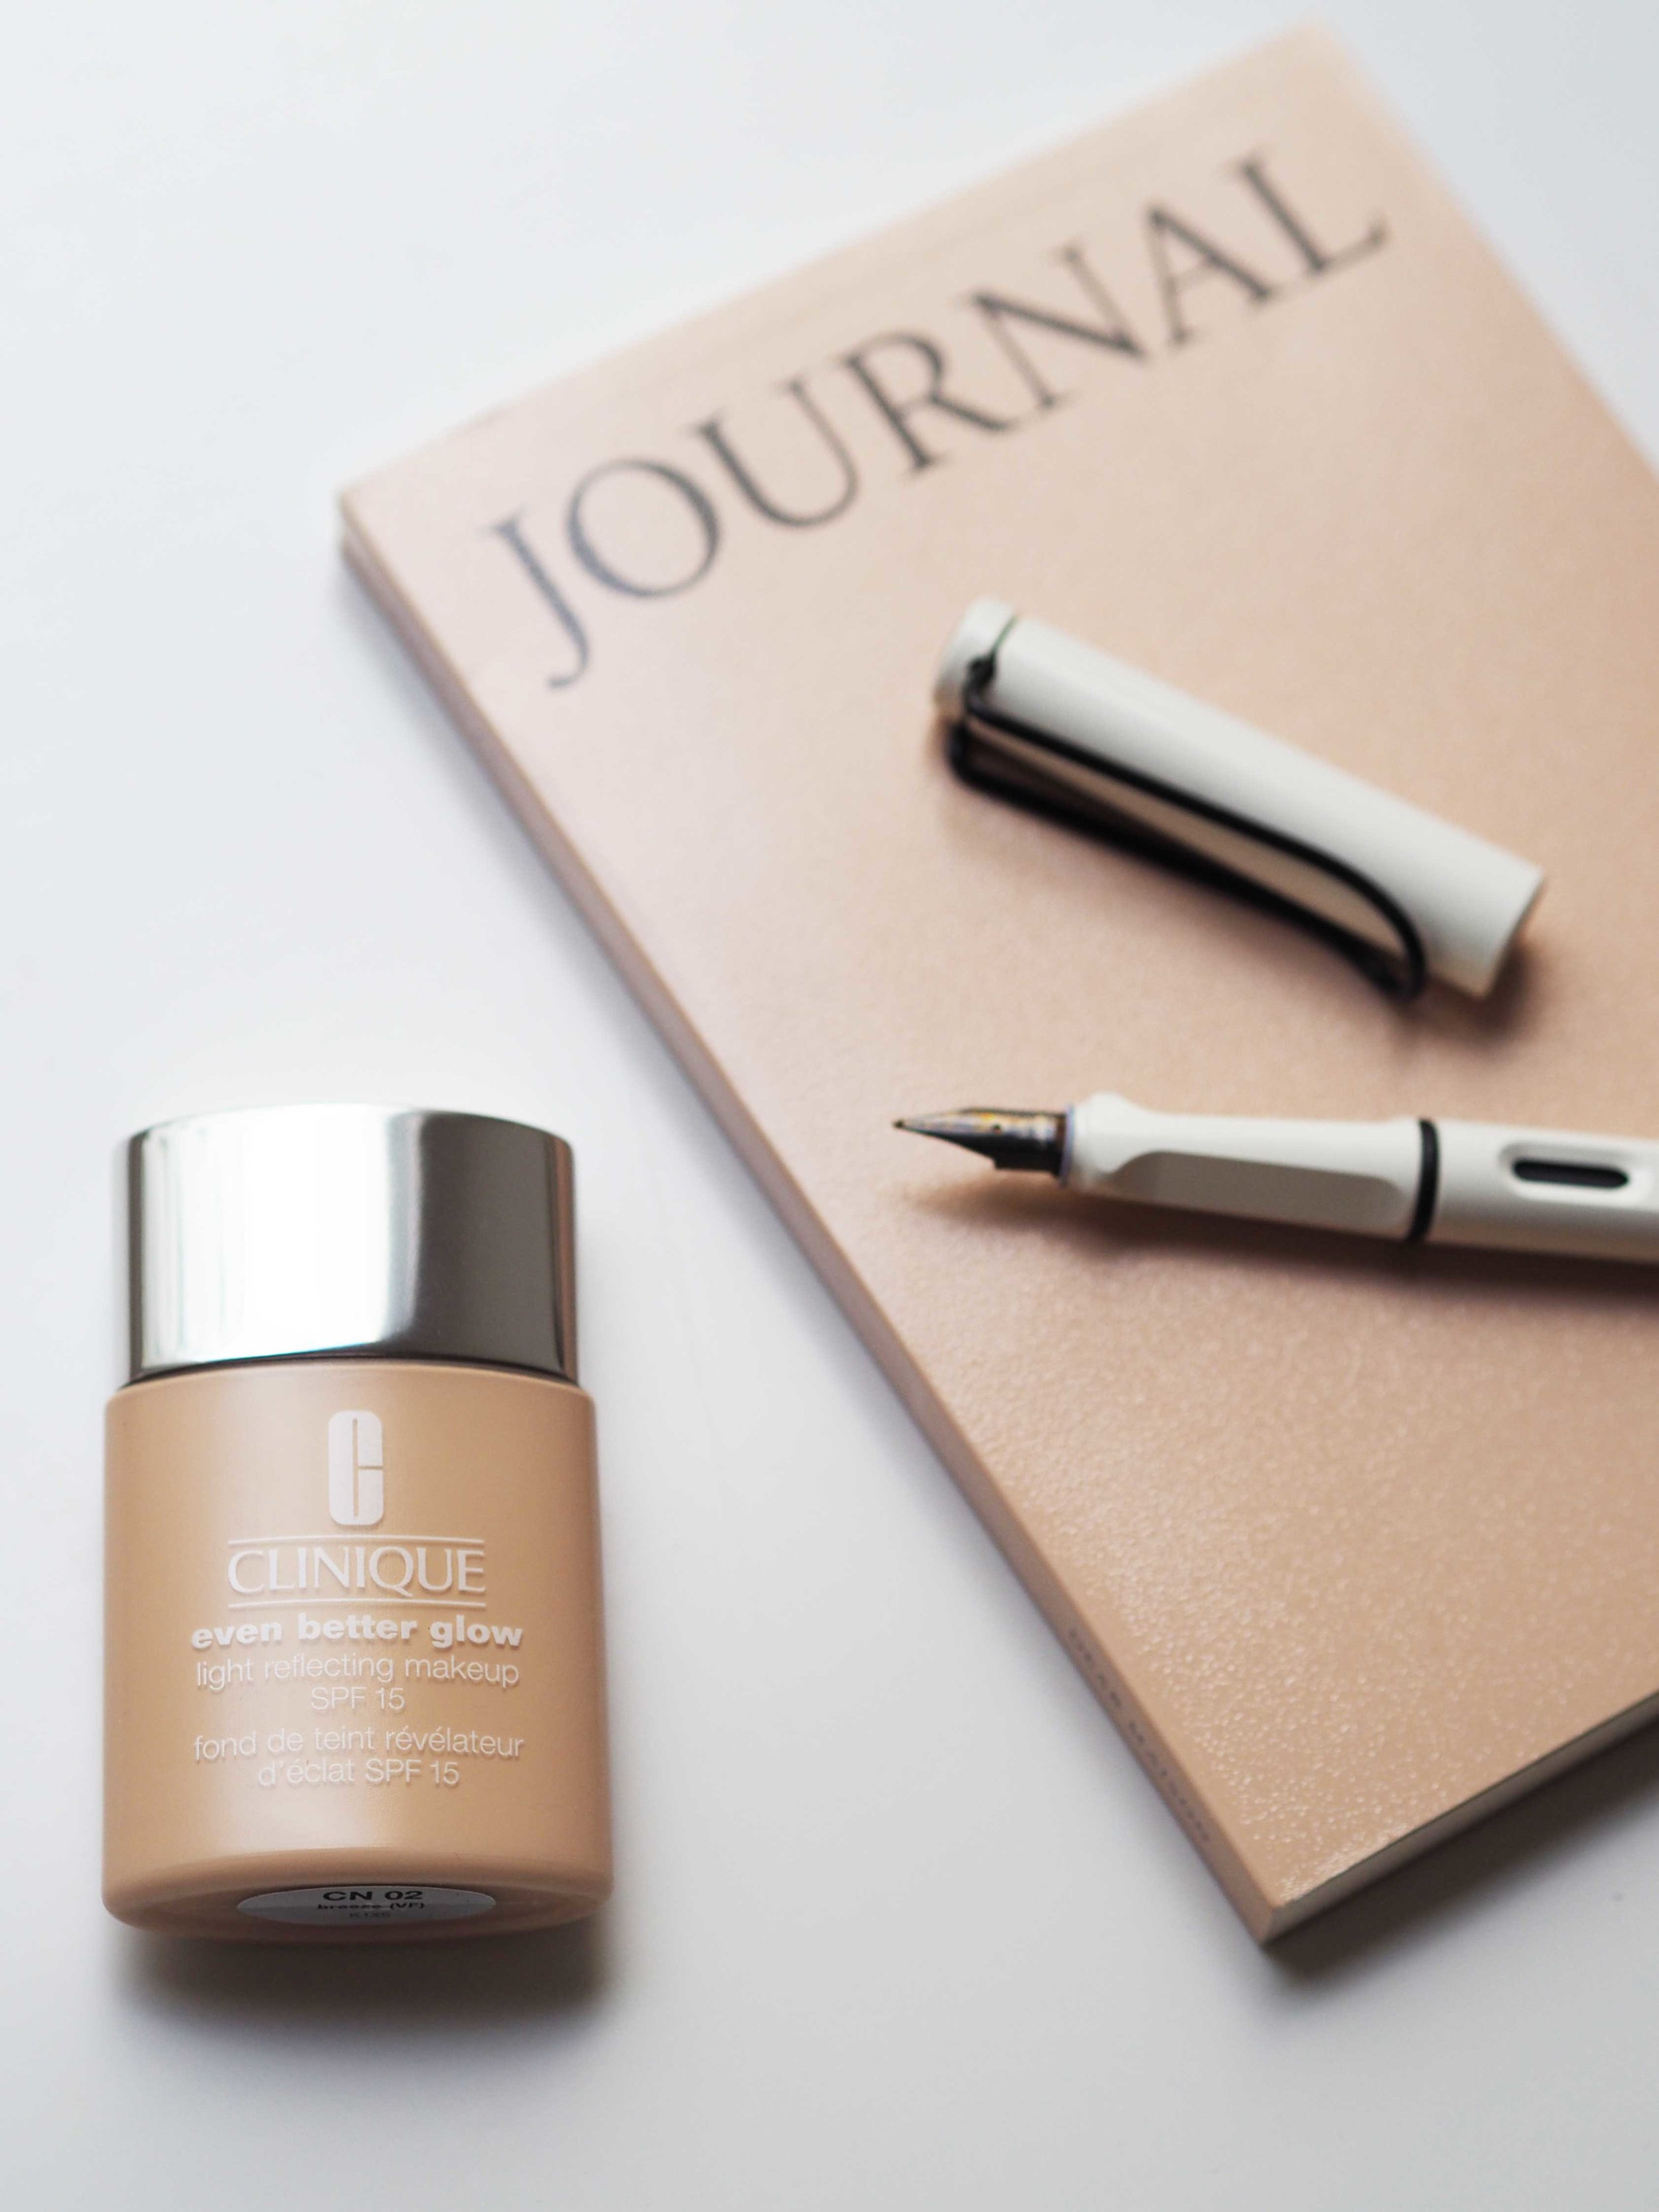 CLINIQUE'S even better glow foundation | picture by birdsneverbored.com